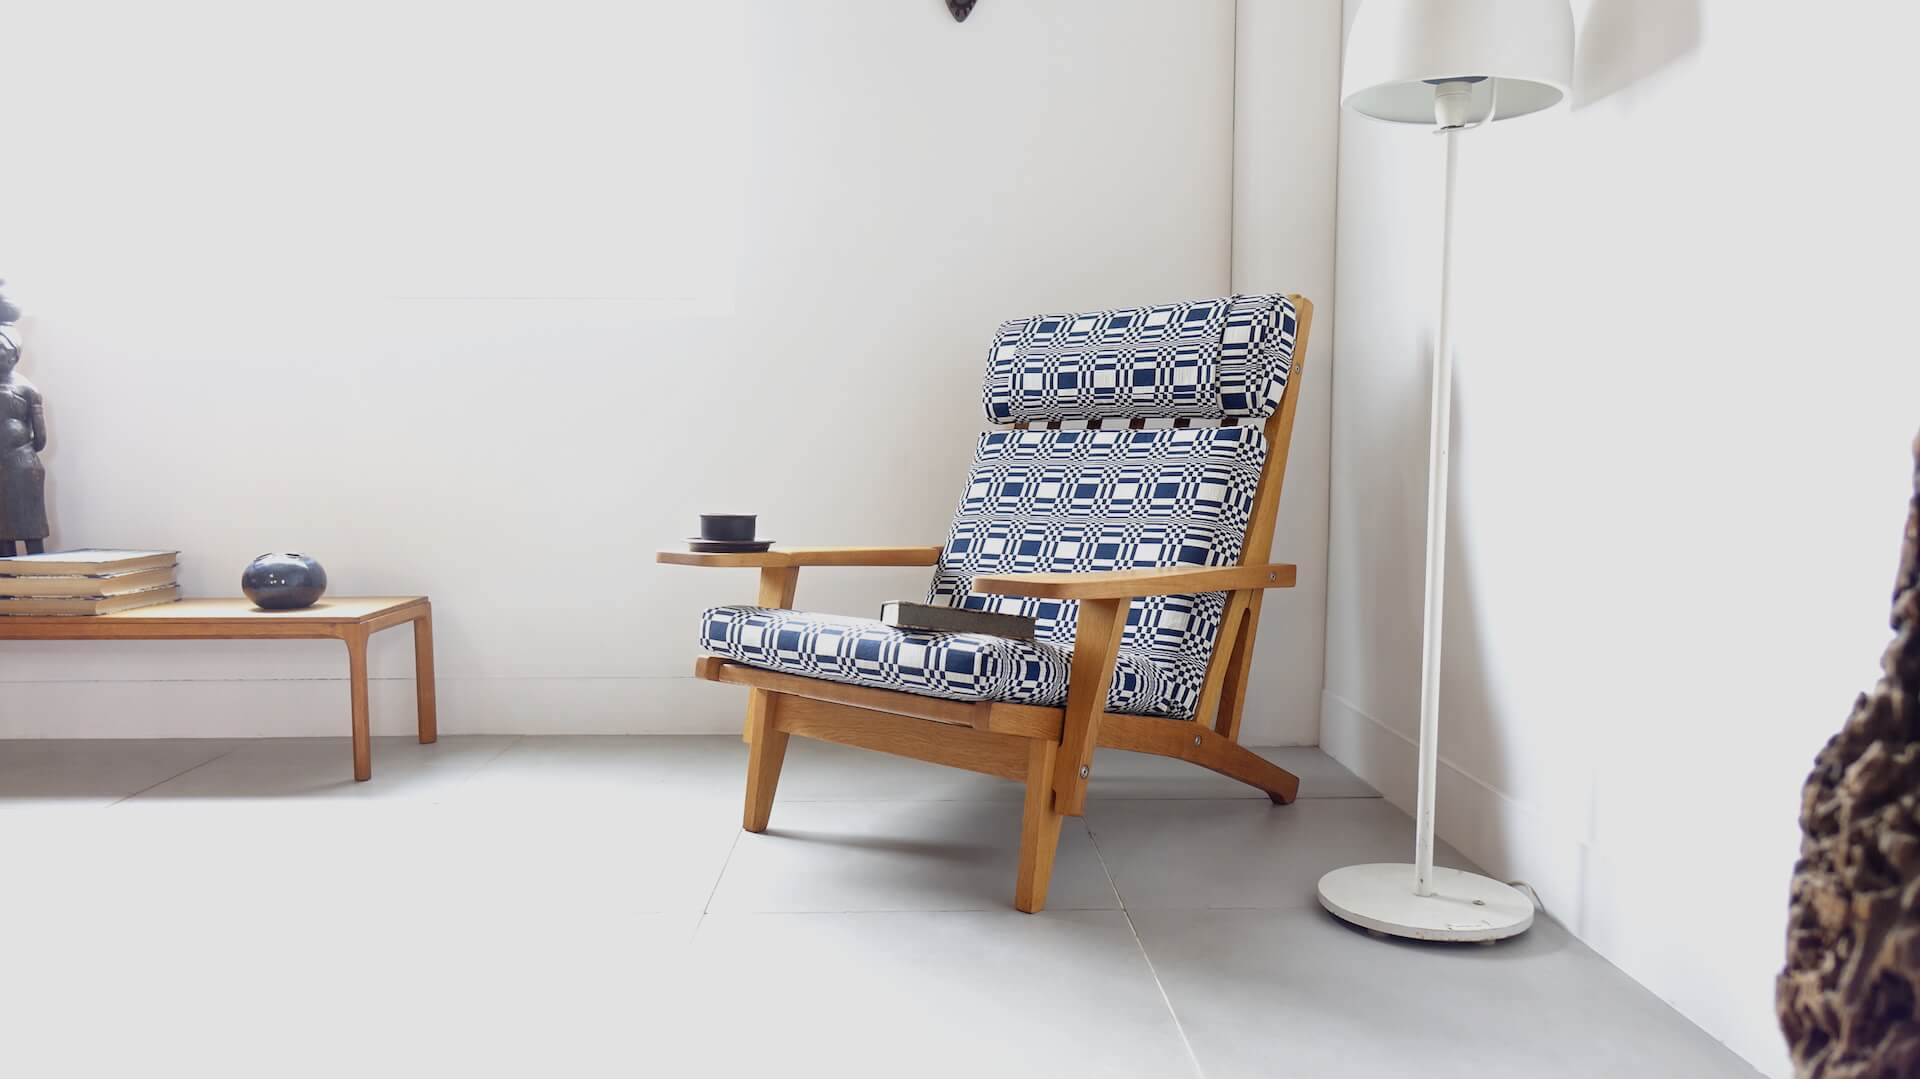 """GE375"" Eazy chair by Hans J. Wegner"